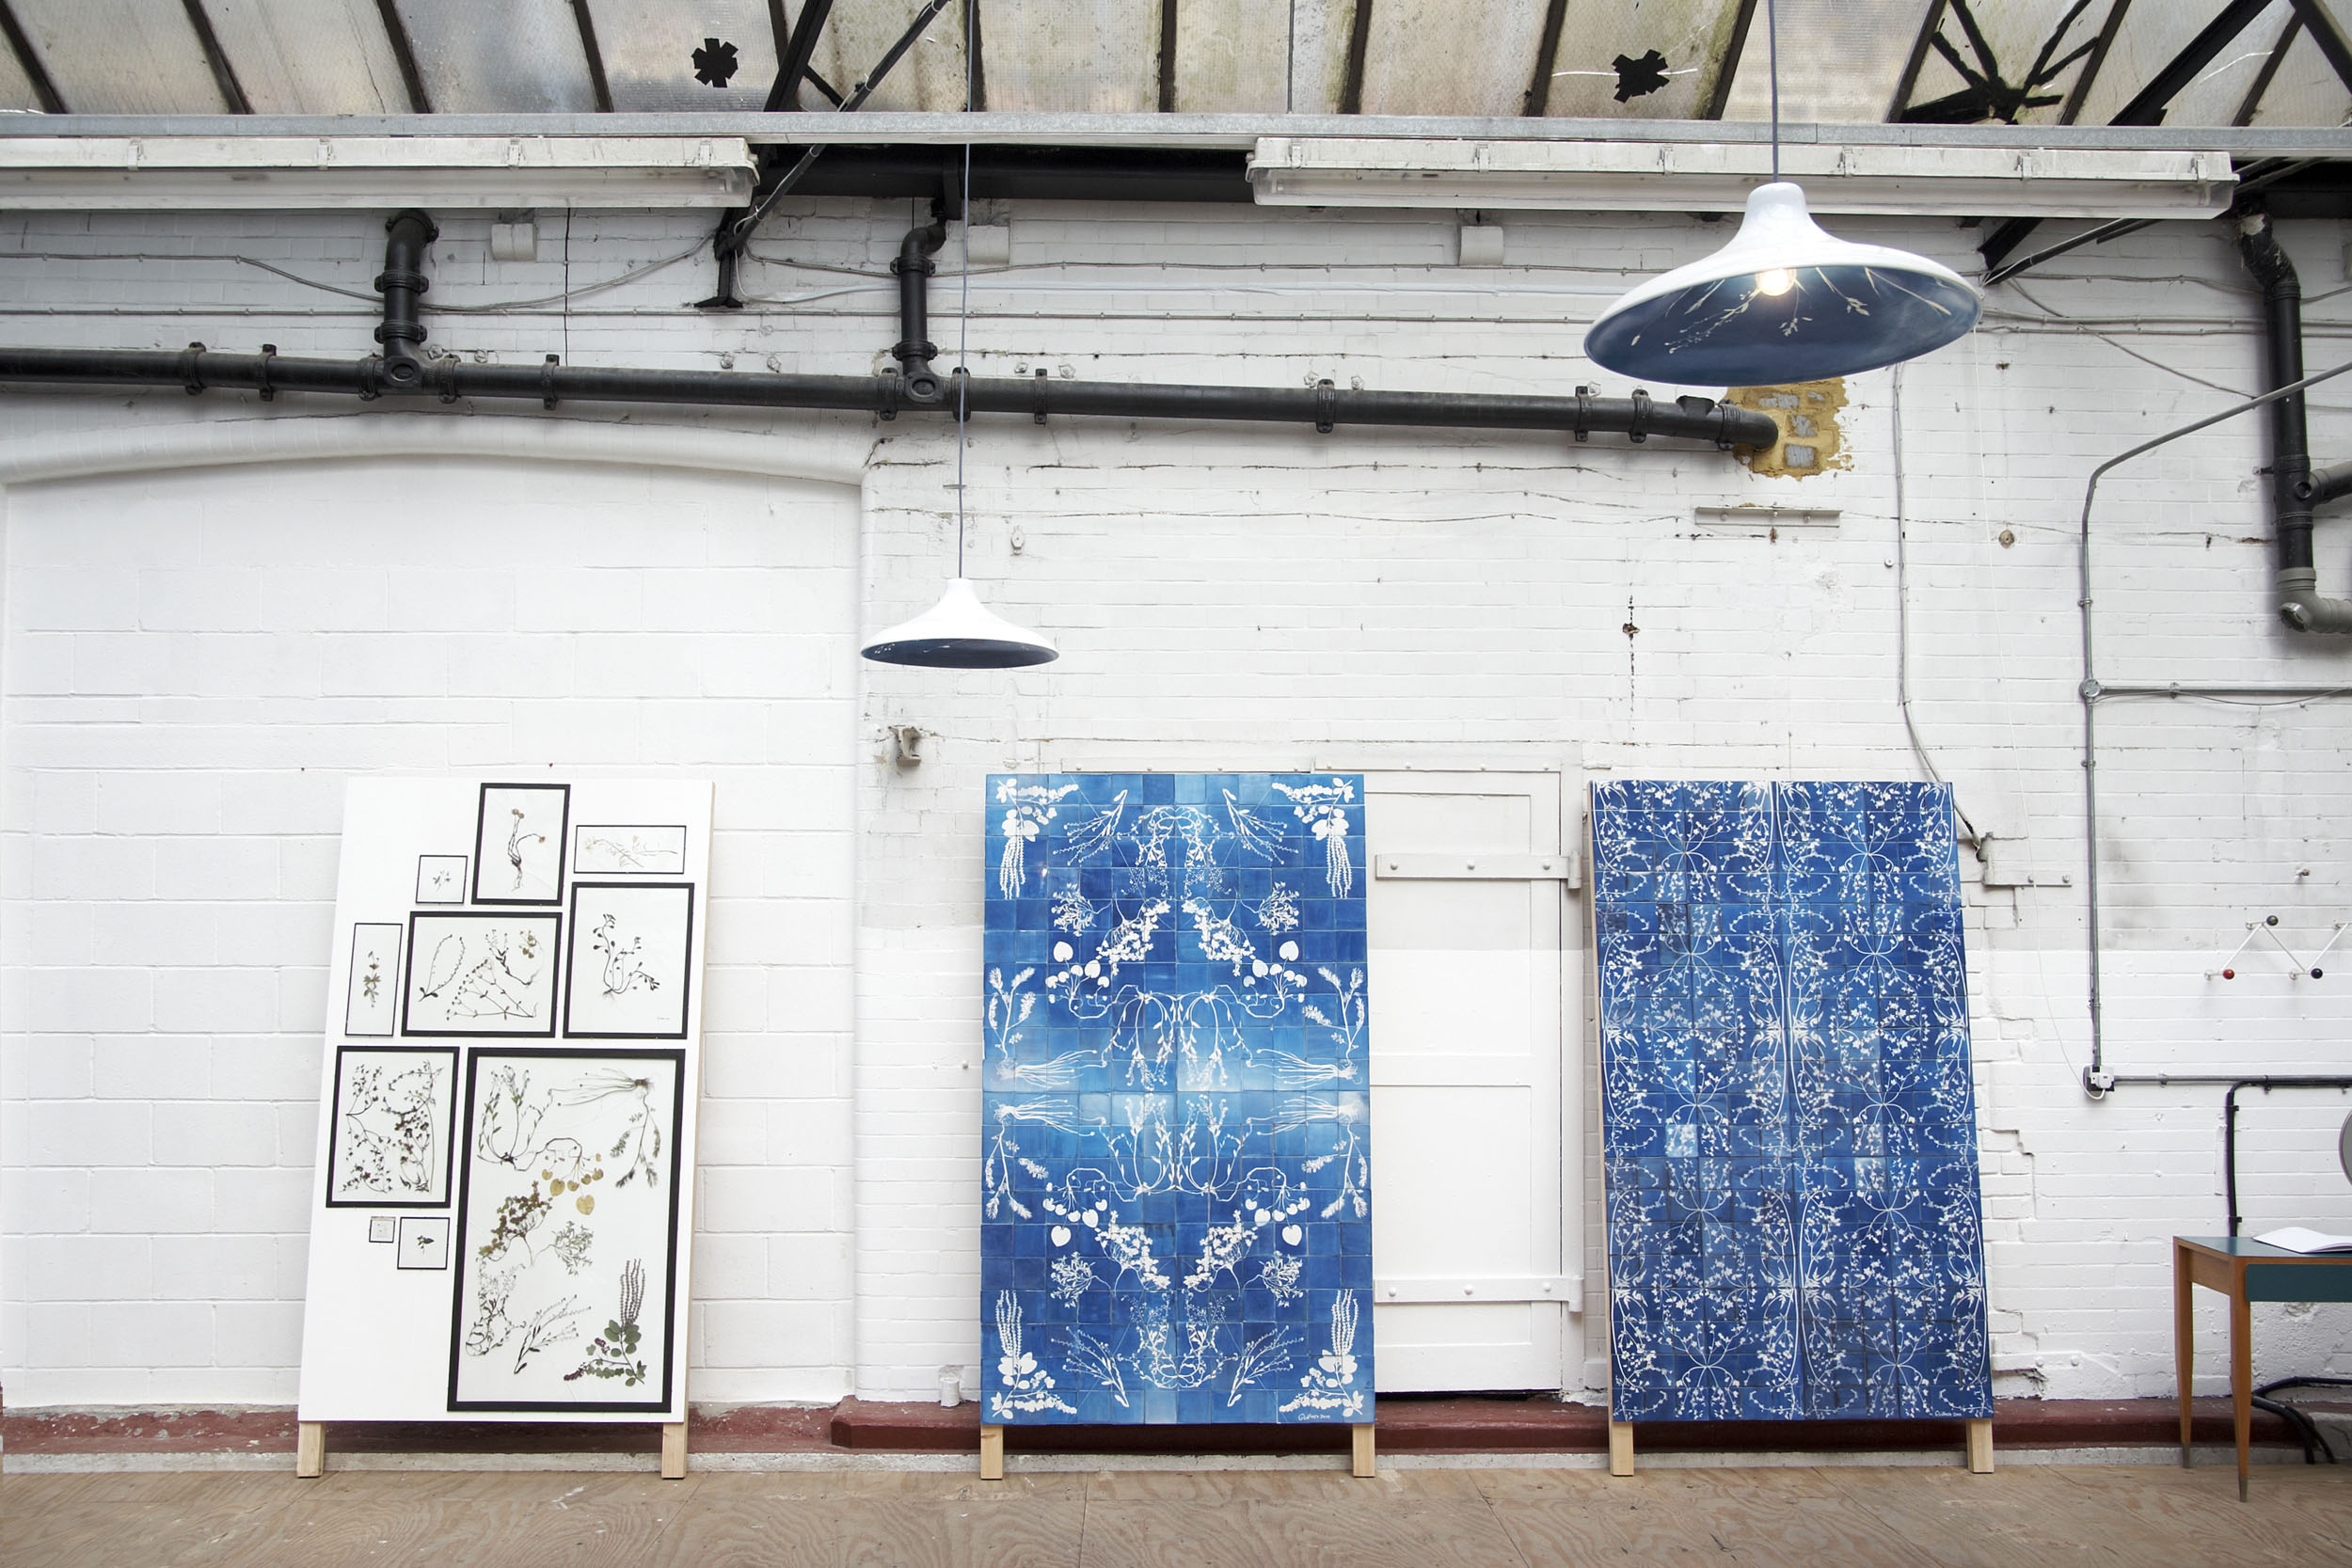 A presentation of Blueware tiles exhibited at Brompton Design week including glass plates with specimen